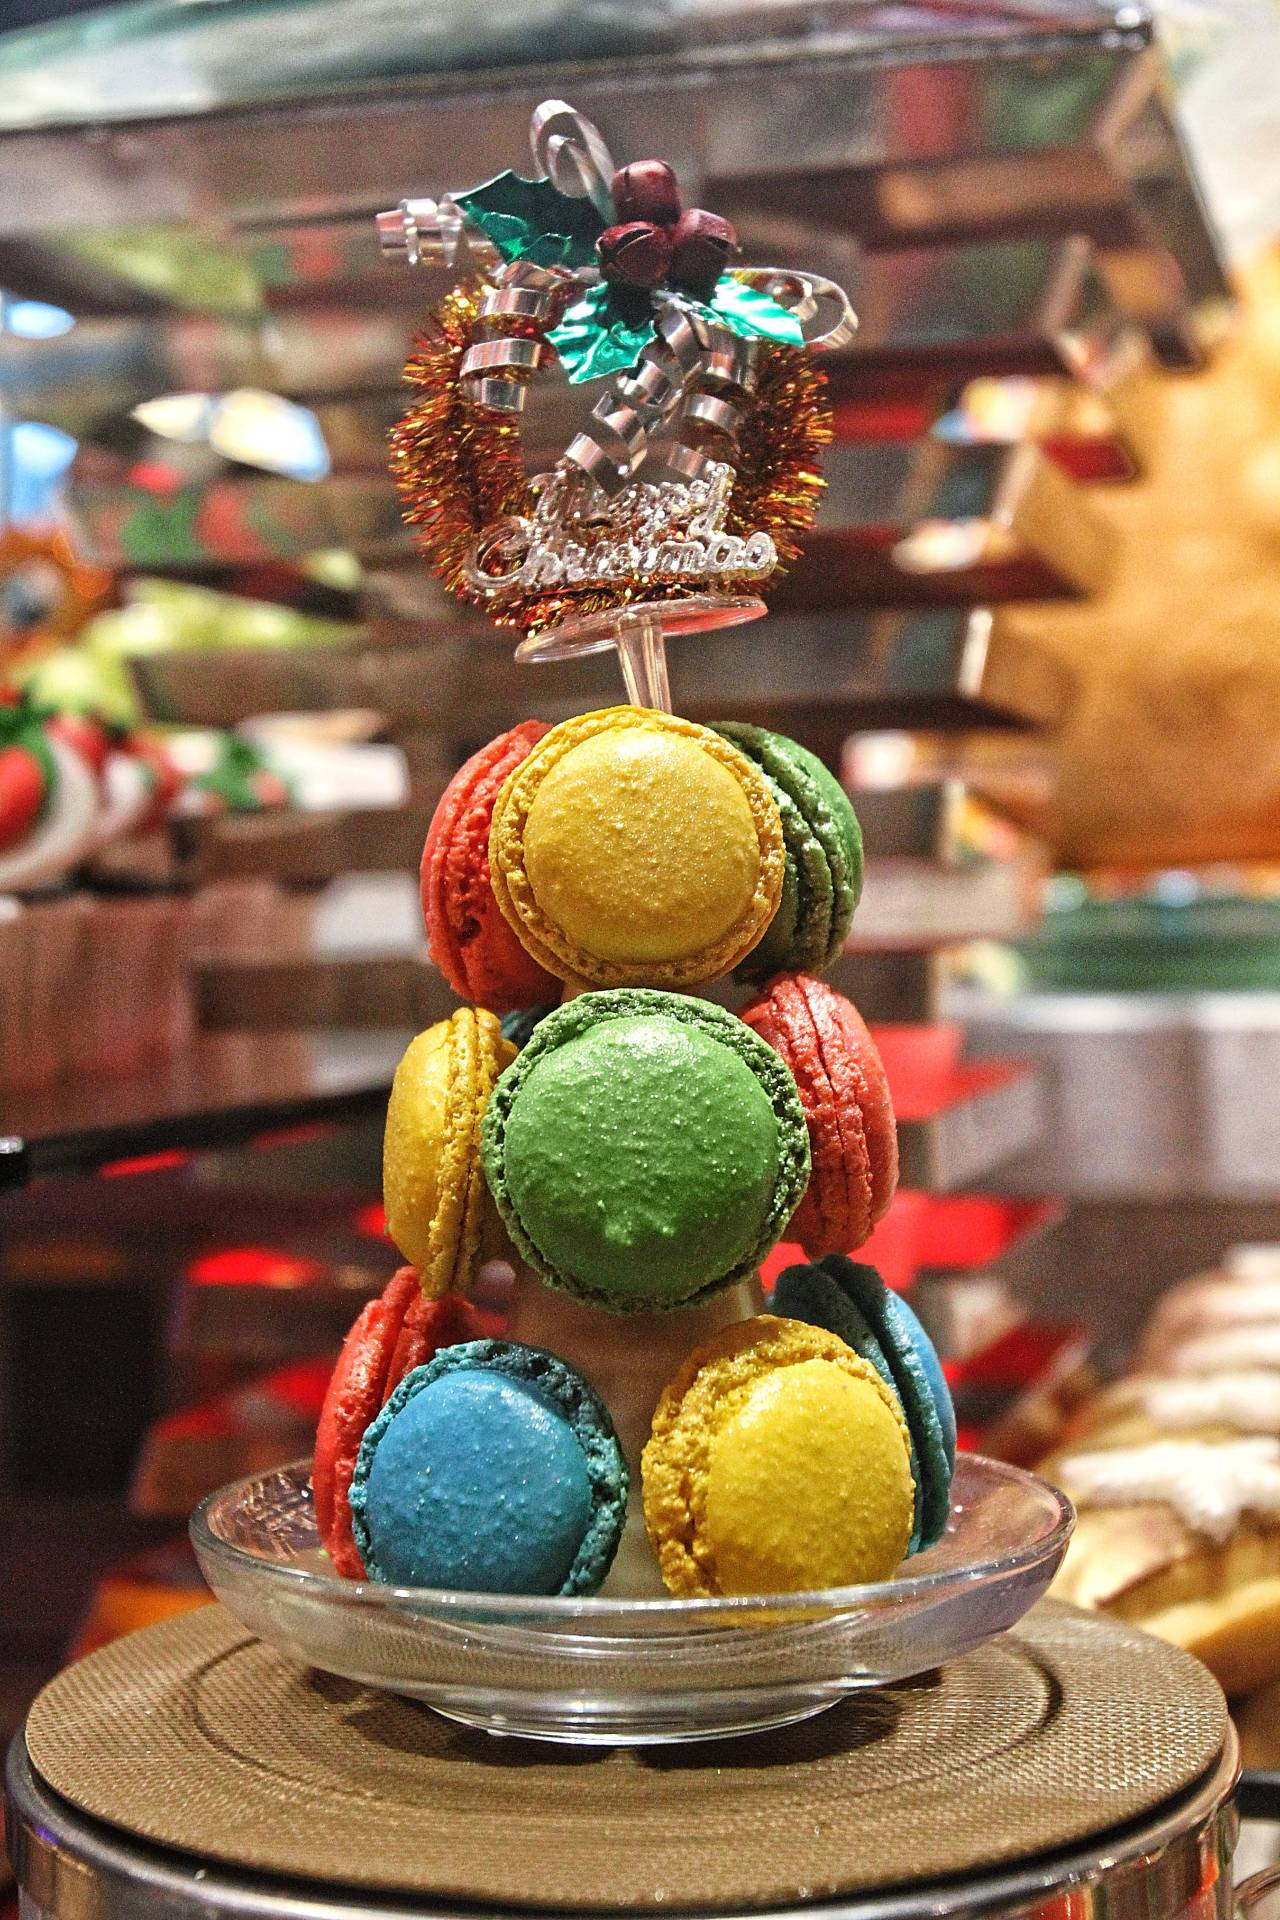 A tower of macaroons is a great way to end the meal.